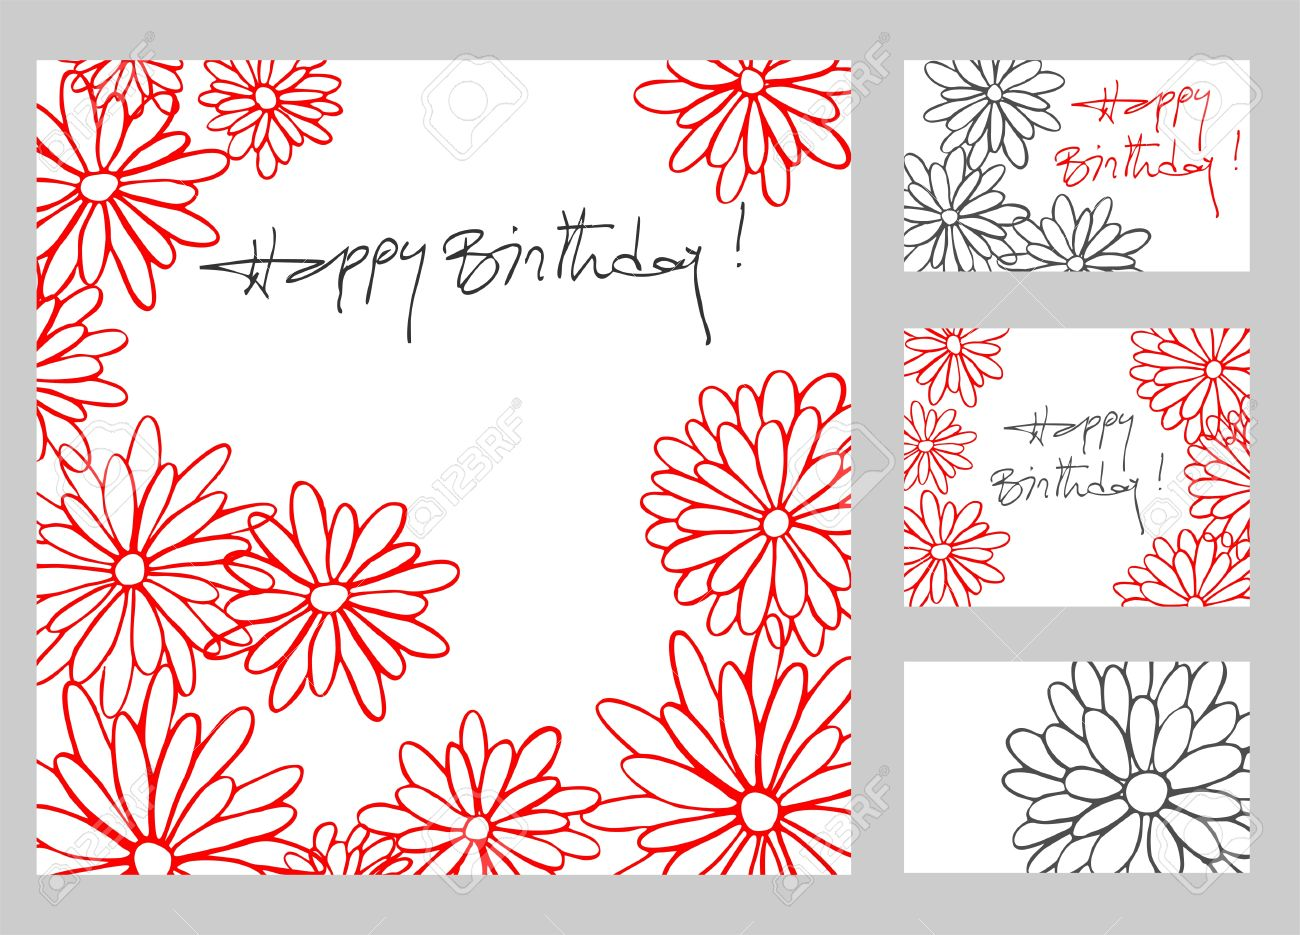 birthday greeting cards drawing ; 18677569-happy-birthday-greetings-cards-set-with-hand-drawn-flowers